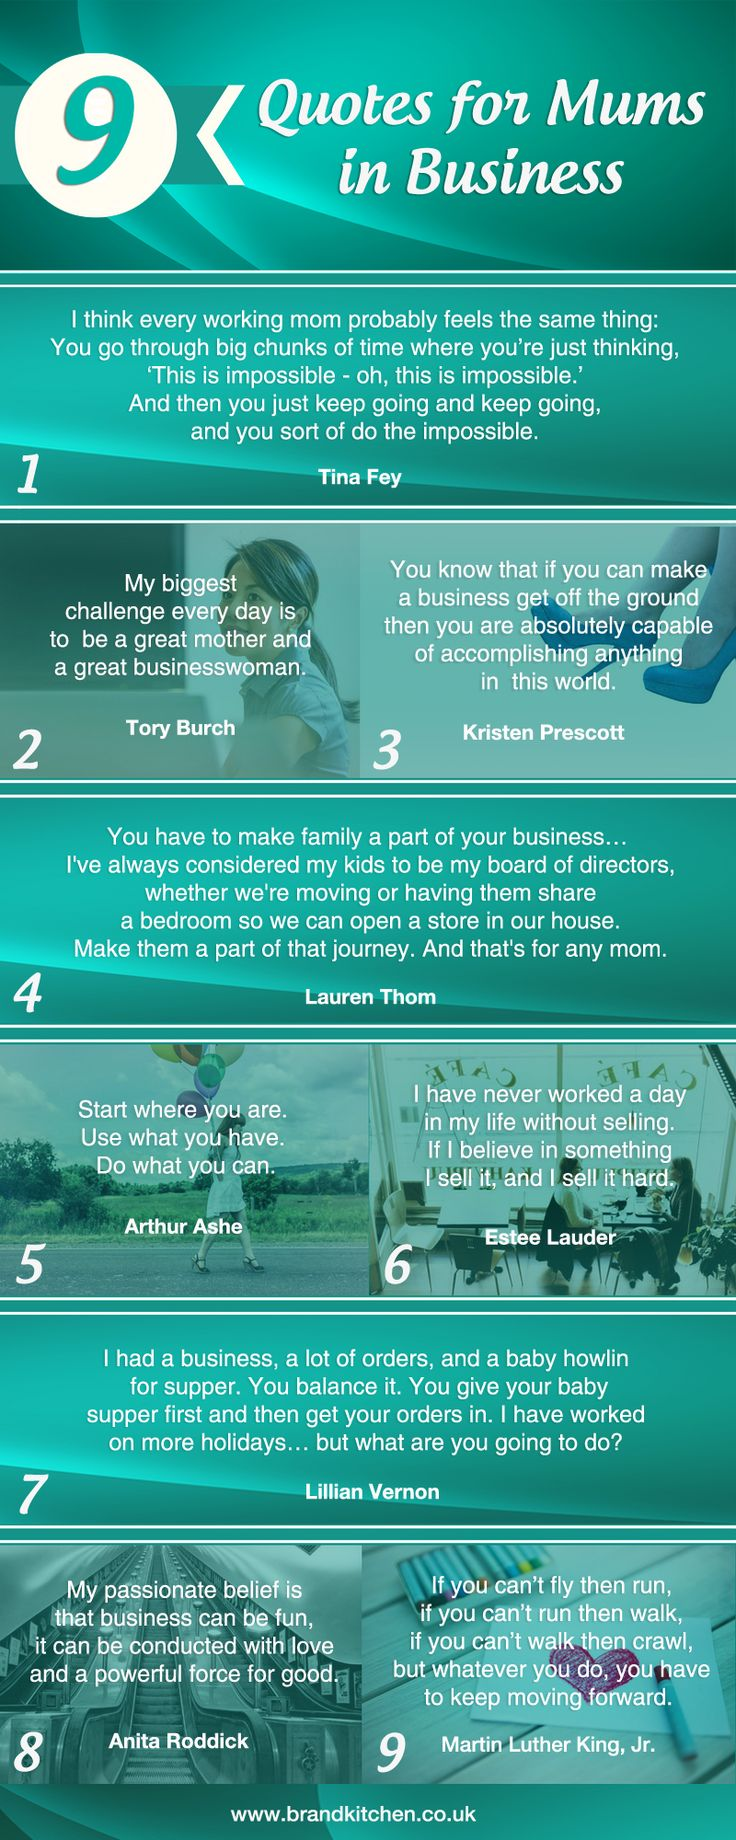 9 Quotes for Mums in Business #infographic #quotes #business #mum